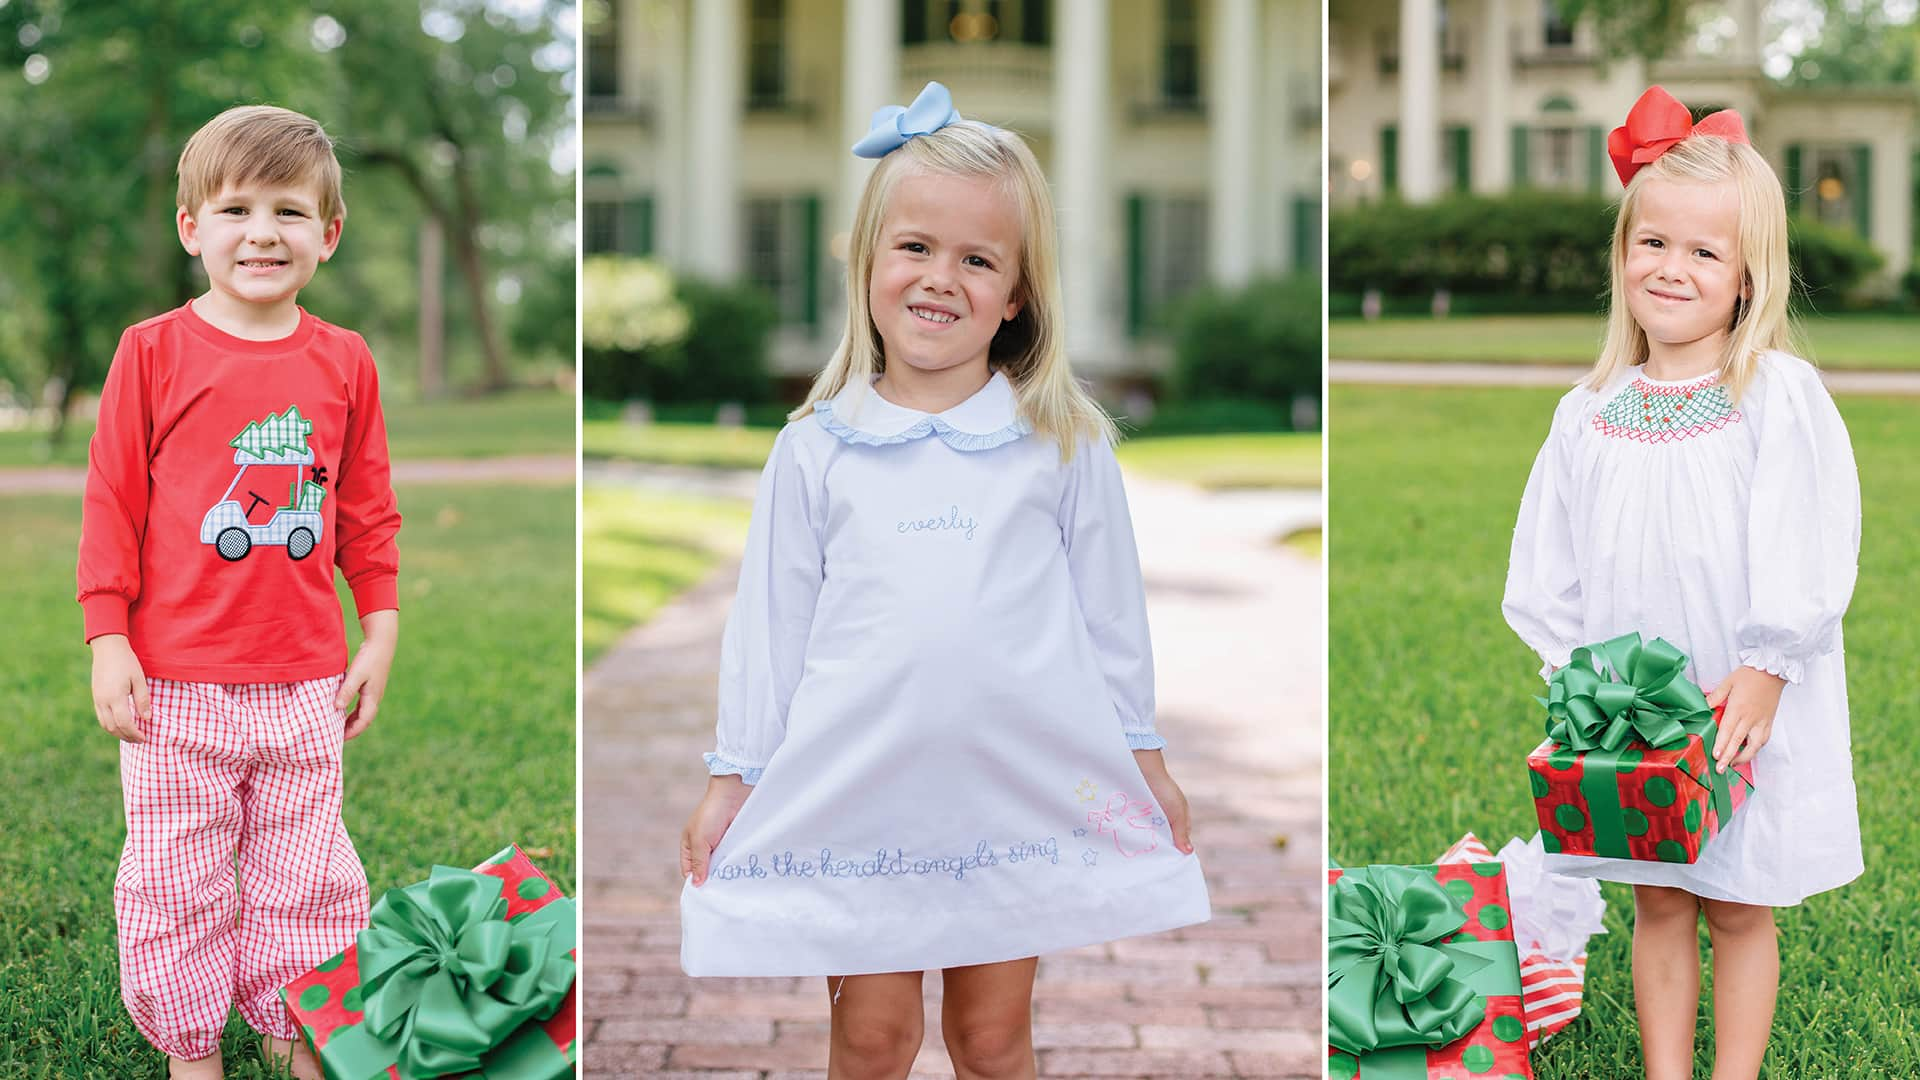 Baby Boy And Girl Matching Halloween Costumes.Cecil Lou Smocked Clothing Monogrammed Children S Clothes